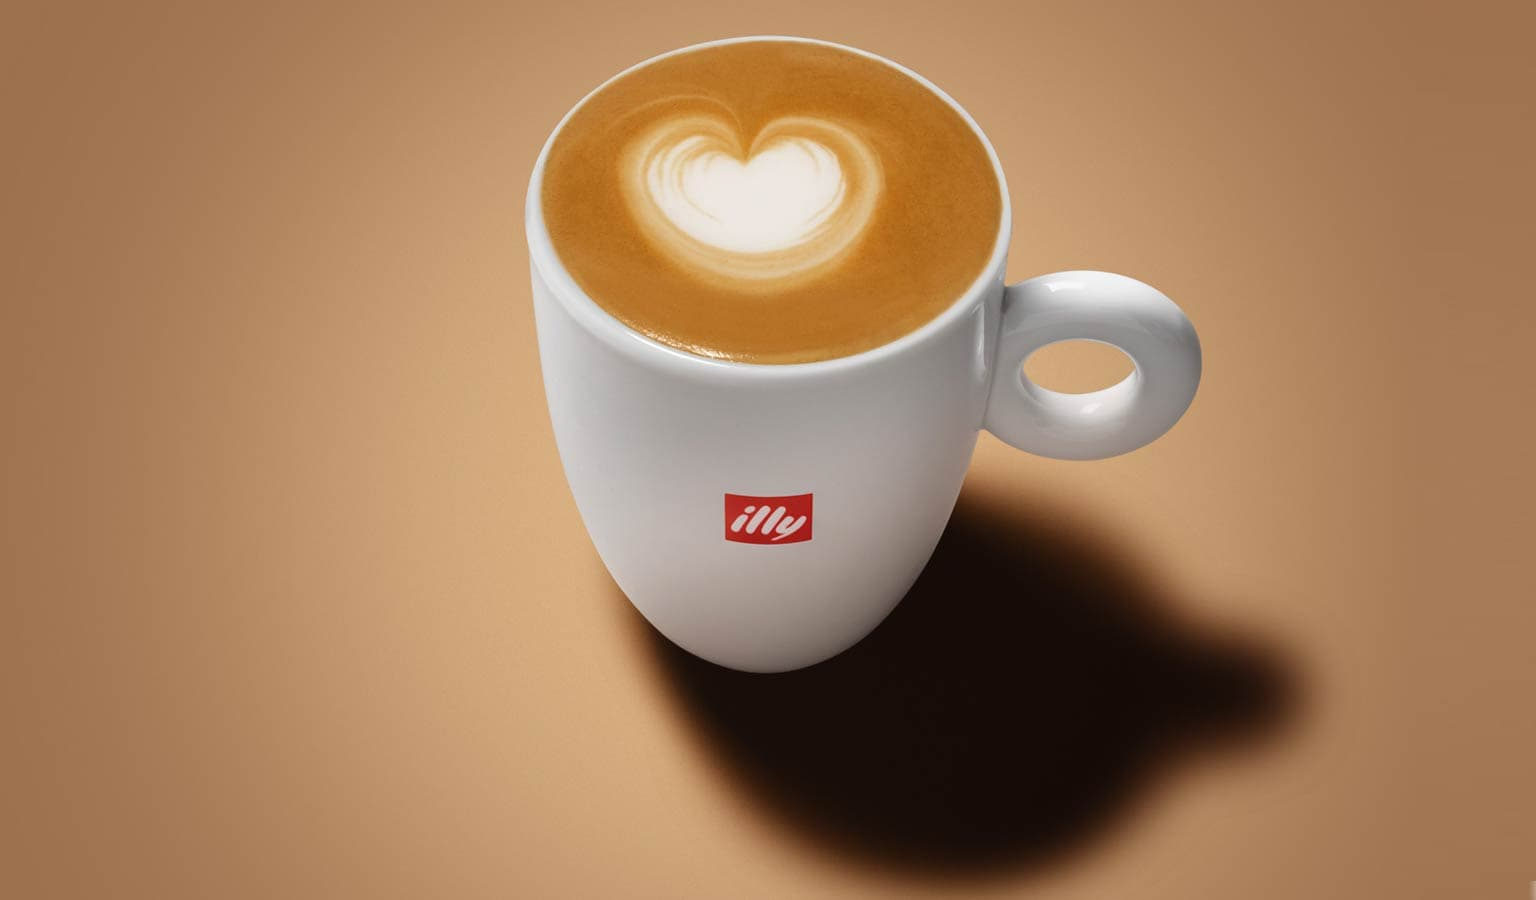 Gourmet Coffee And Italian Coffee Machines Illy Shop